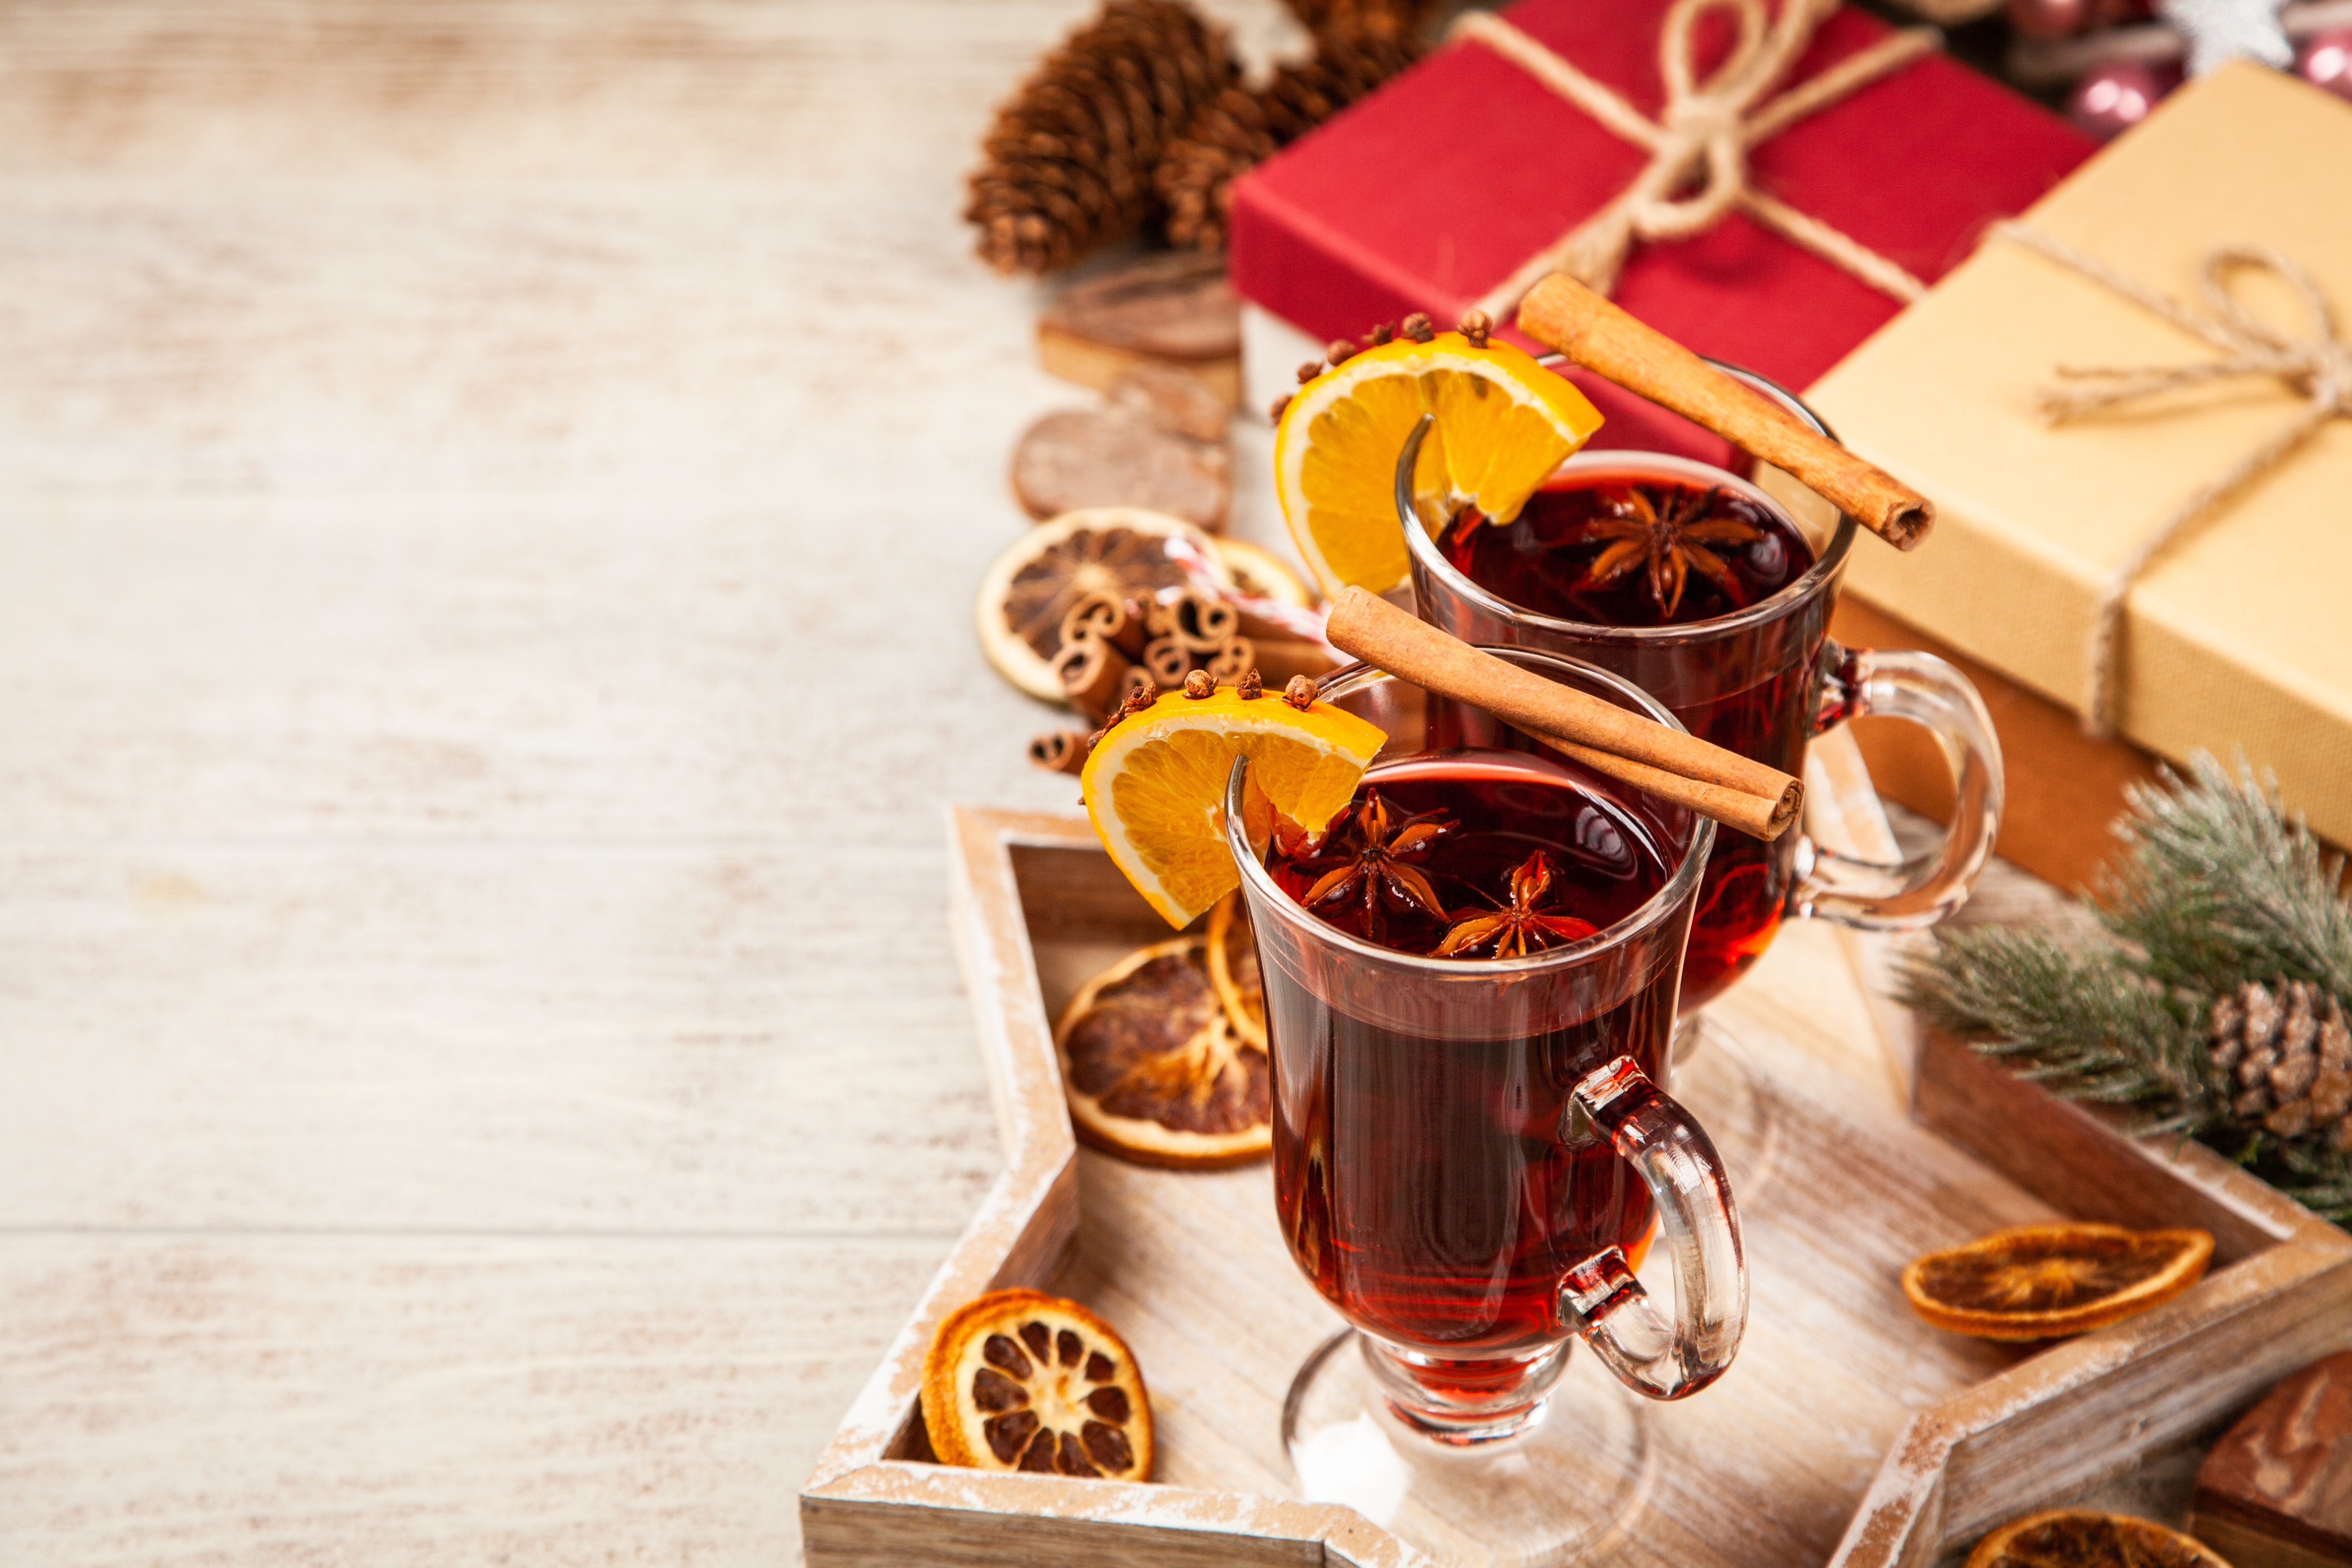 Winter: The ideal time for a glass of Hot wine